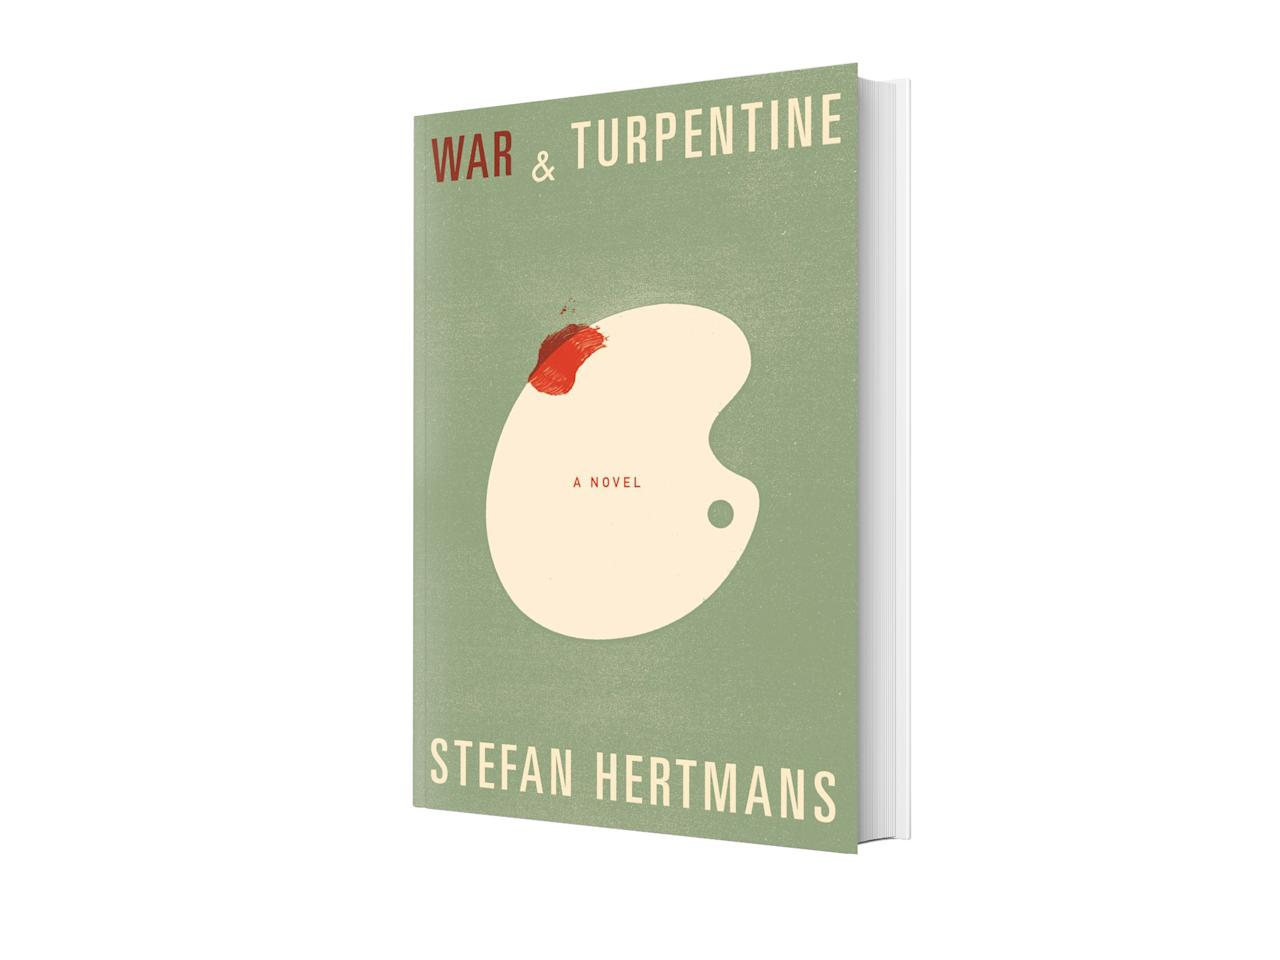 """<p>""""<em>War and Turpentine</em> is a book about three generations of Belgians, focusing on the legacy of WWI and Belgium's exceptional painters. Long-listed for the 2017 Man Booker Prize, <em>War and Turpentine</em> is the absolute companion book for any art and history lover <a href=""""https://www.cntraveler.com/story/northern-belgium-is-our-new-favorite-food-and-design-destination?mbid=synd_yahoo_rss"""">traveling to Belgium</a>."""" —H.E. Dirk Wouters</p> <p><strong>Buy now:</strong> <em>War and Turpentine</em> by Stefan Hertmans, <a href=""""https://amzn.to/2BOW2DF"""" rel=""""nofollow"""" target=""""_blank""""><em>amazon.com</em></a></p>"""